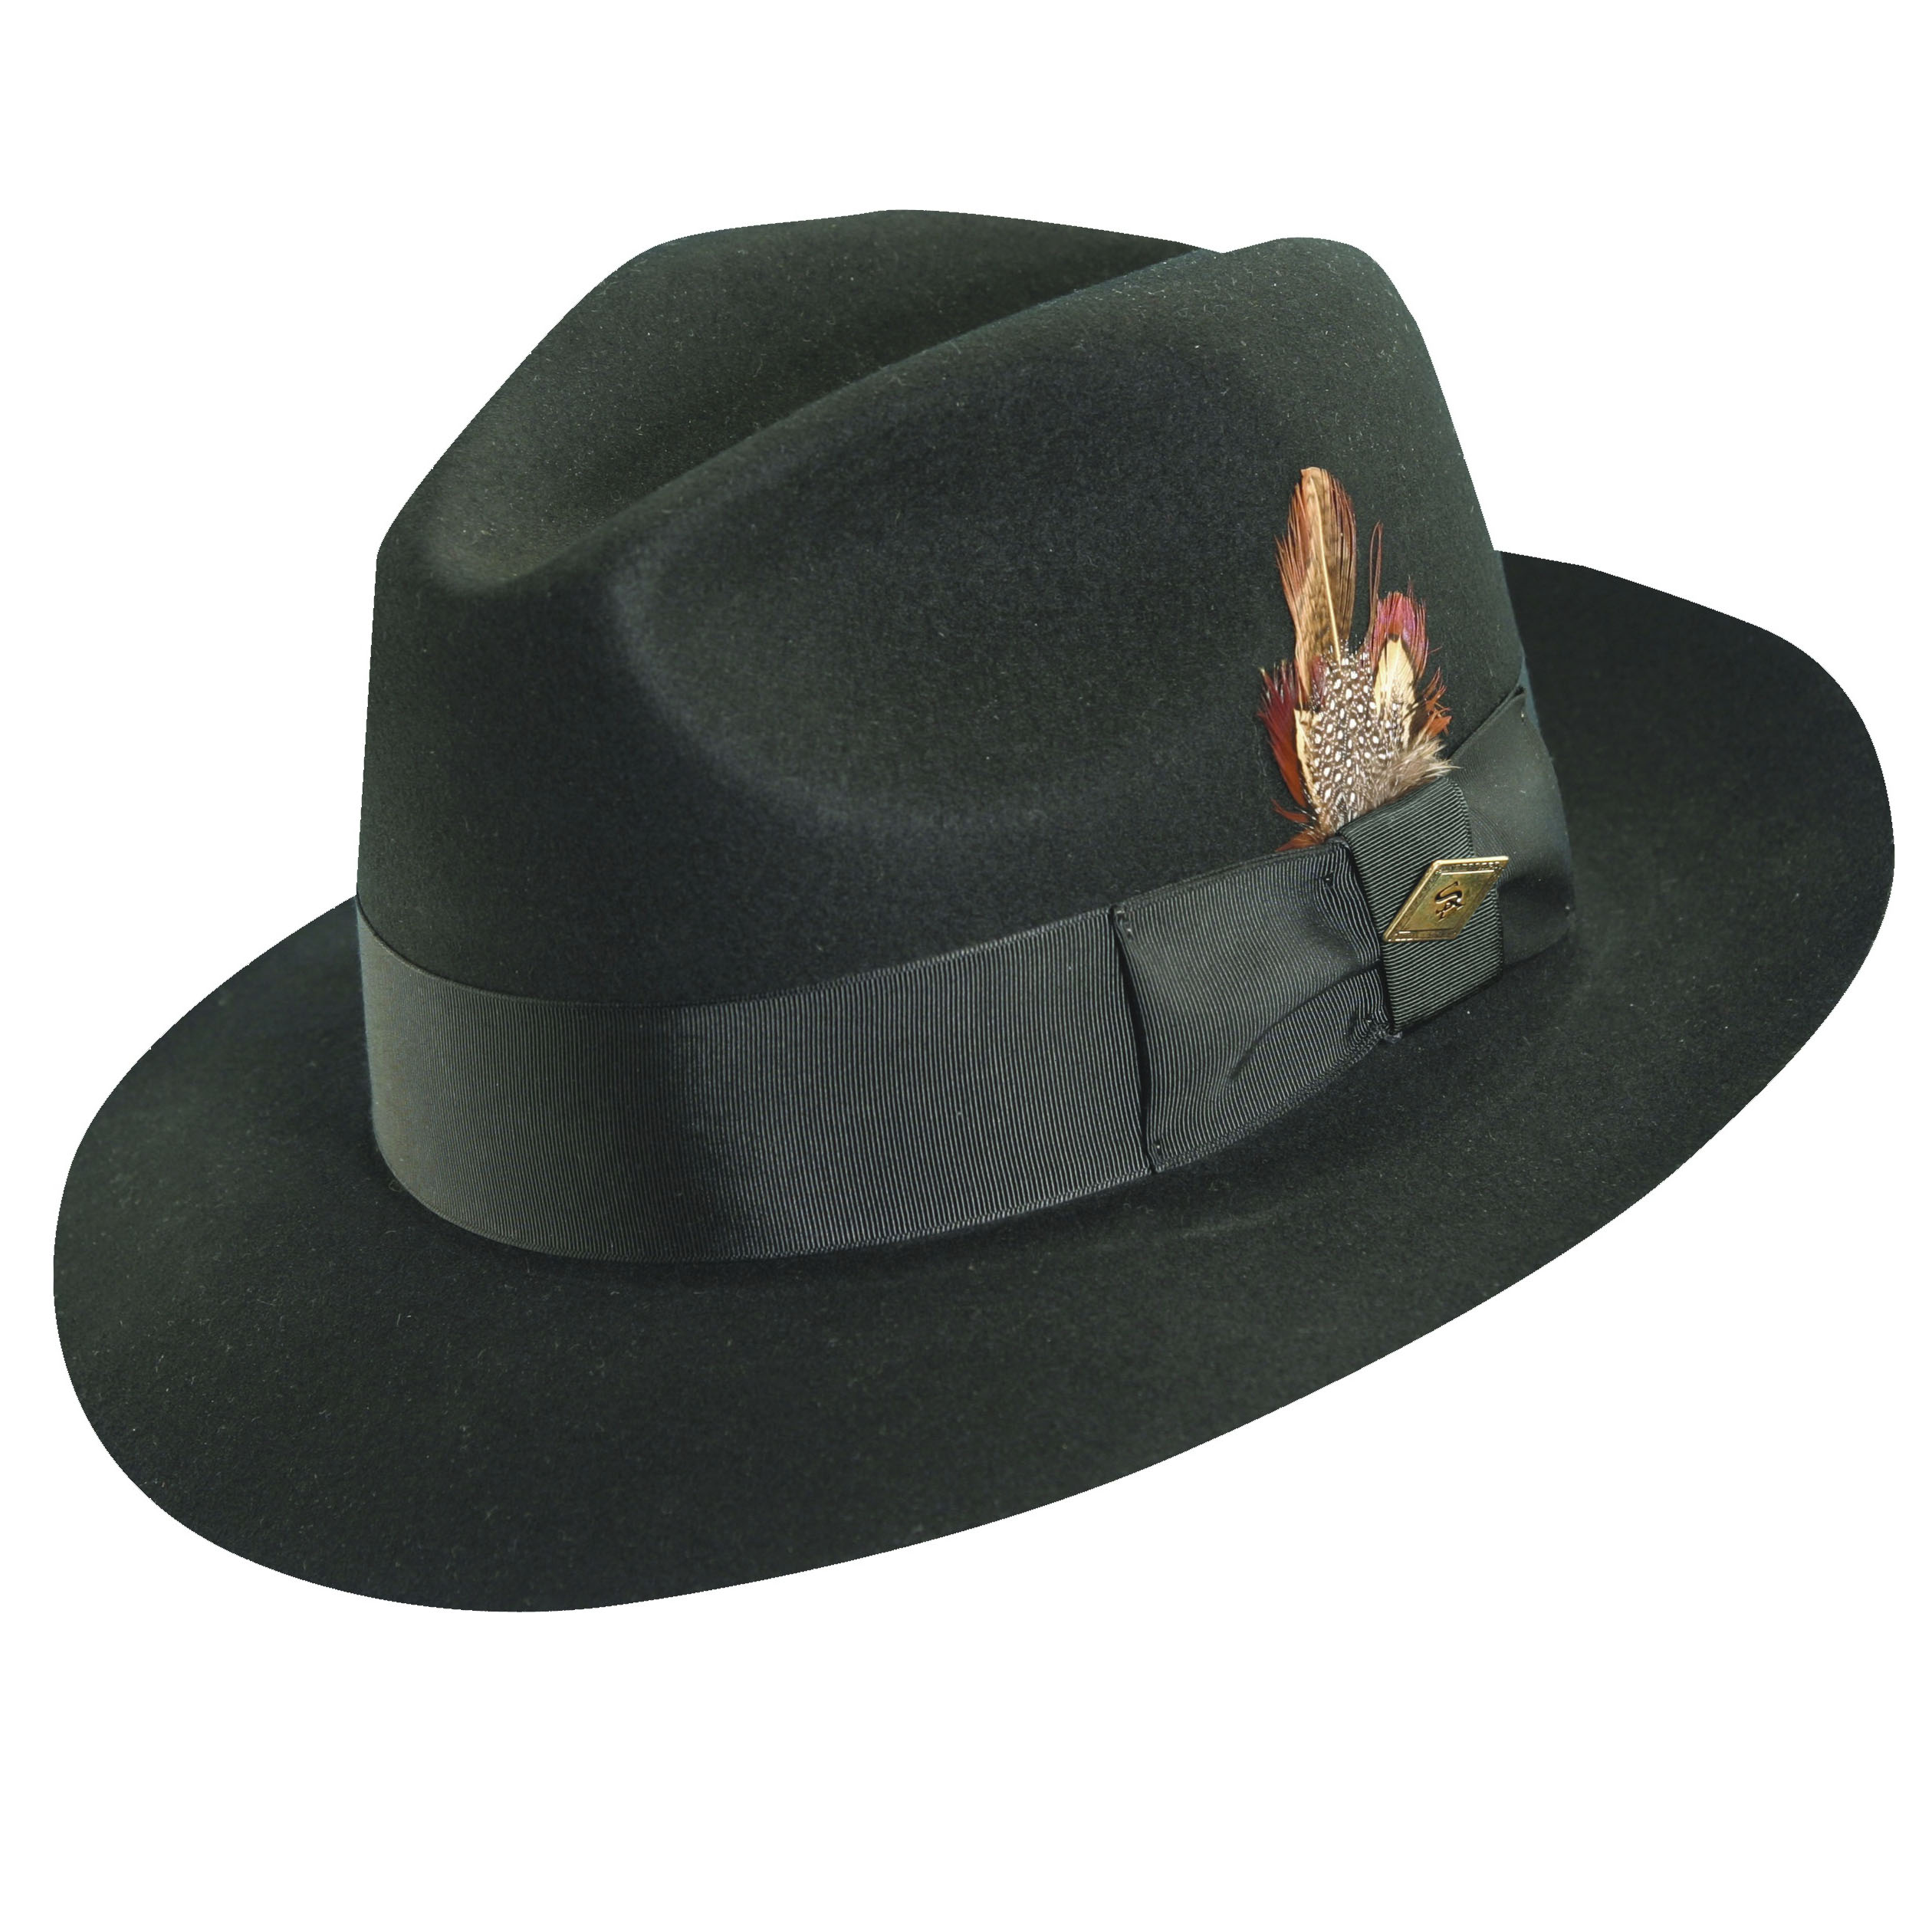 Stacy Adams Wool Felt Fedora Black 34e7713f3ed